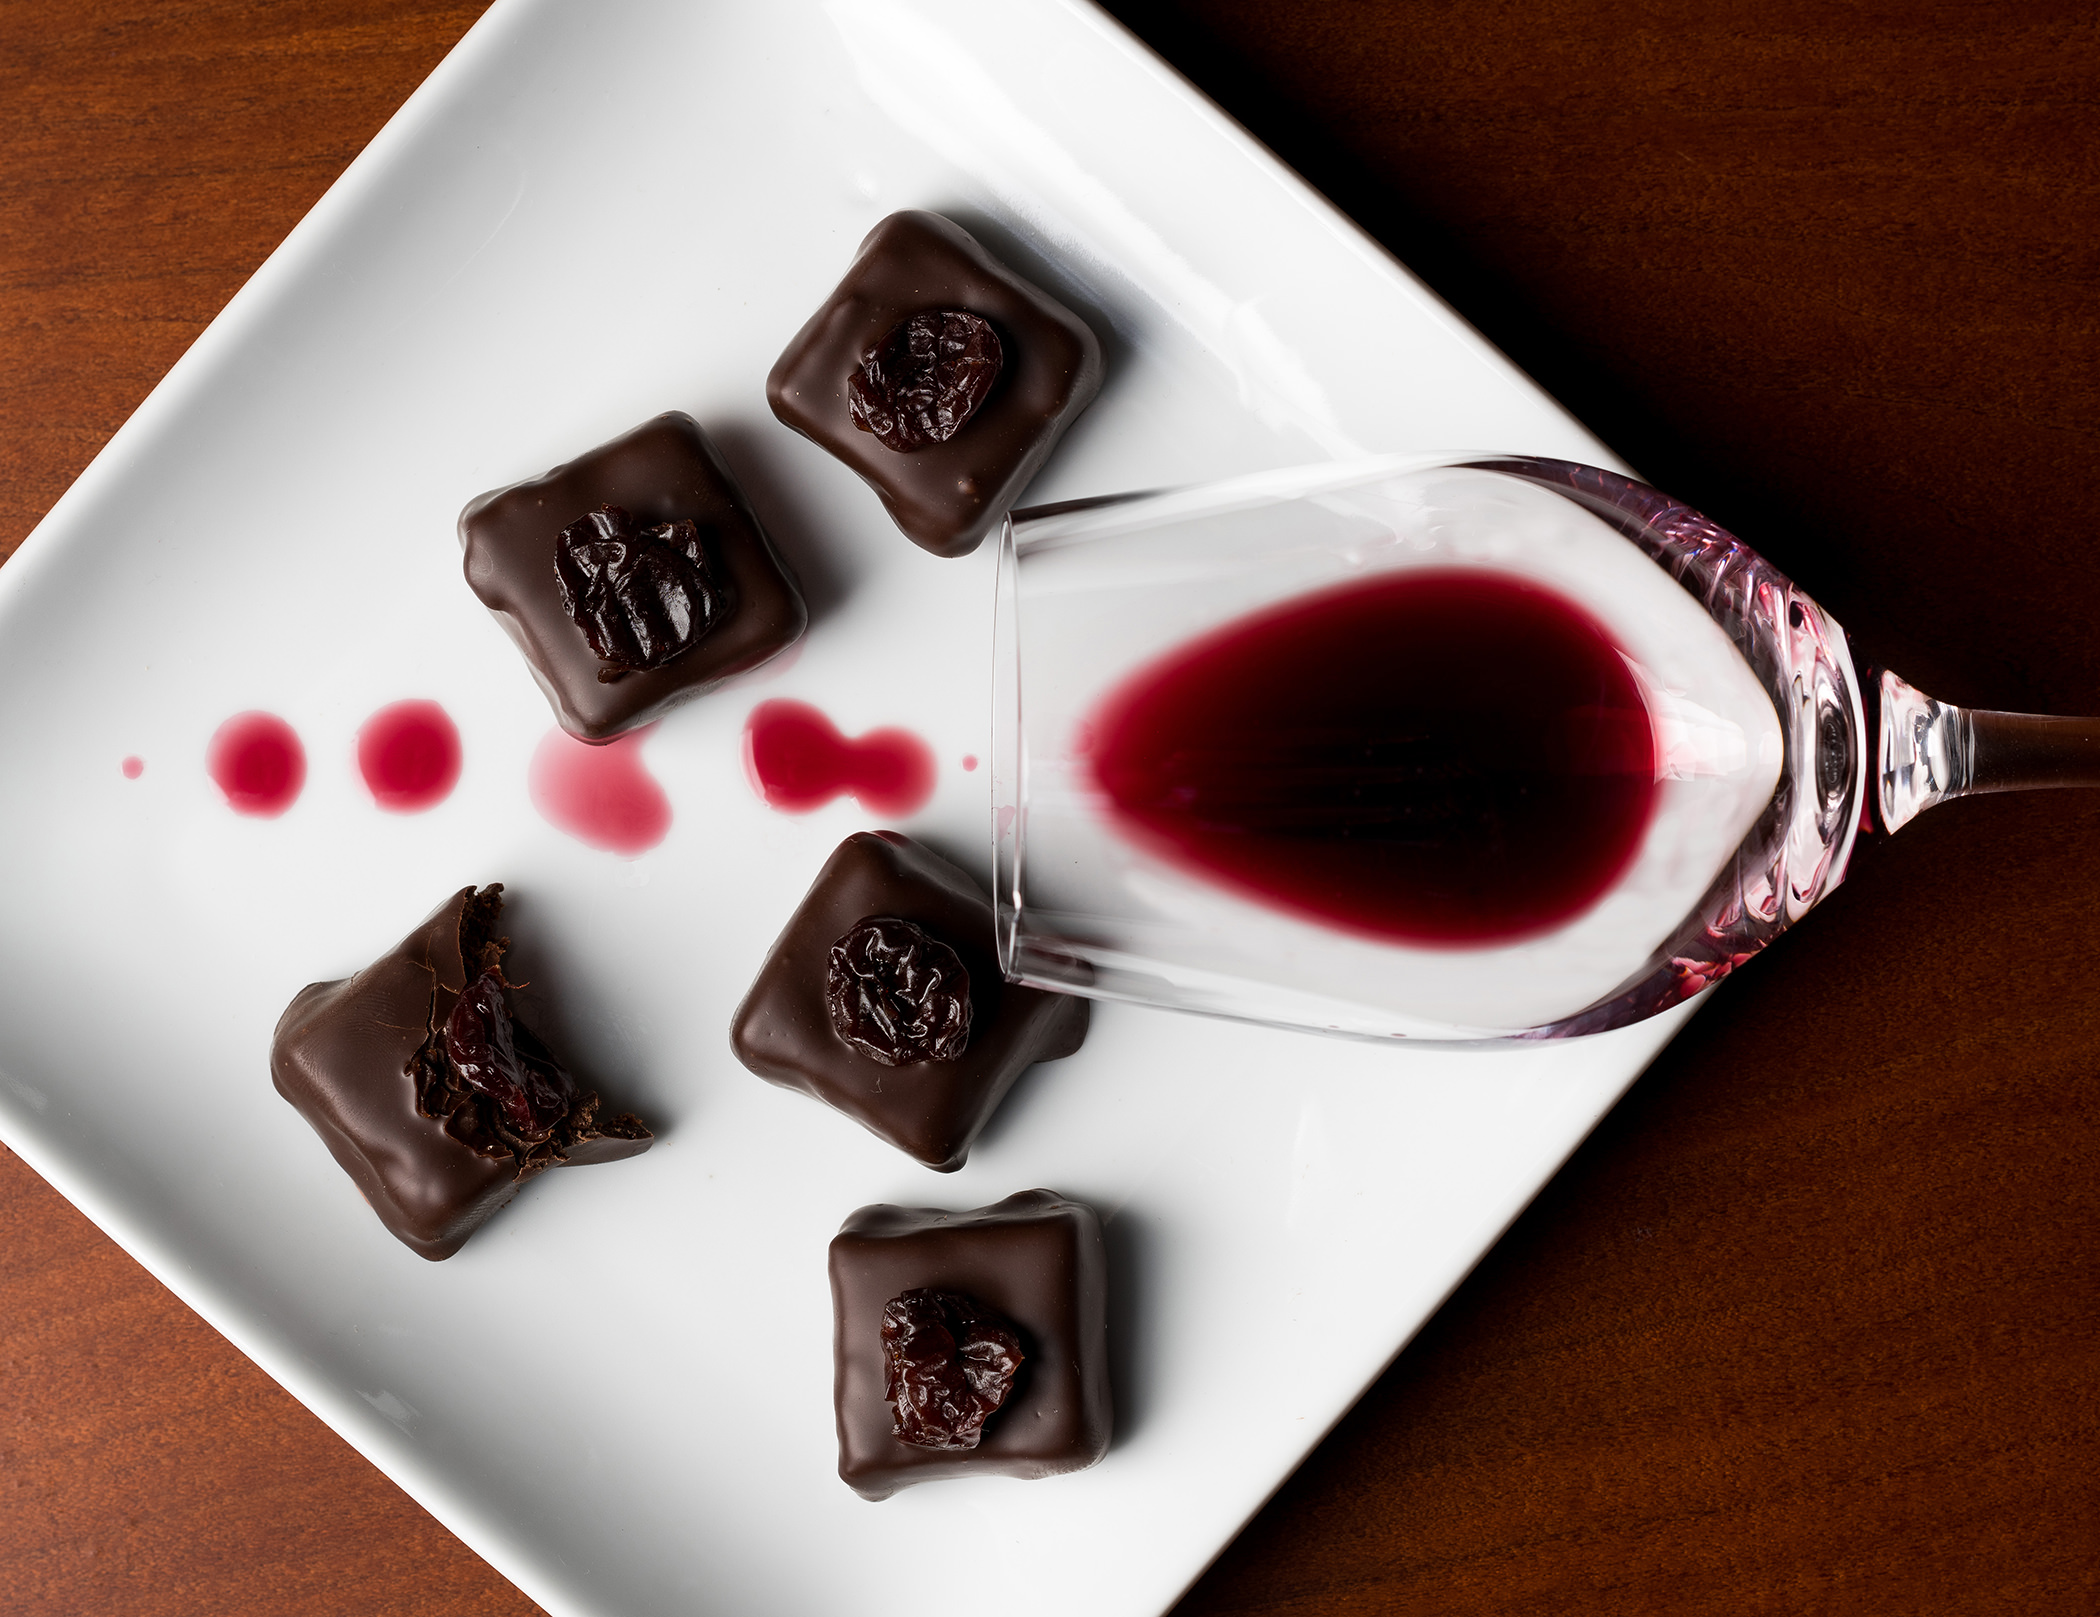 red wine in a glass dribbling over a plate with chocolate truffles